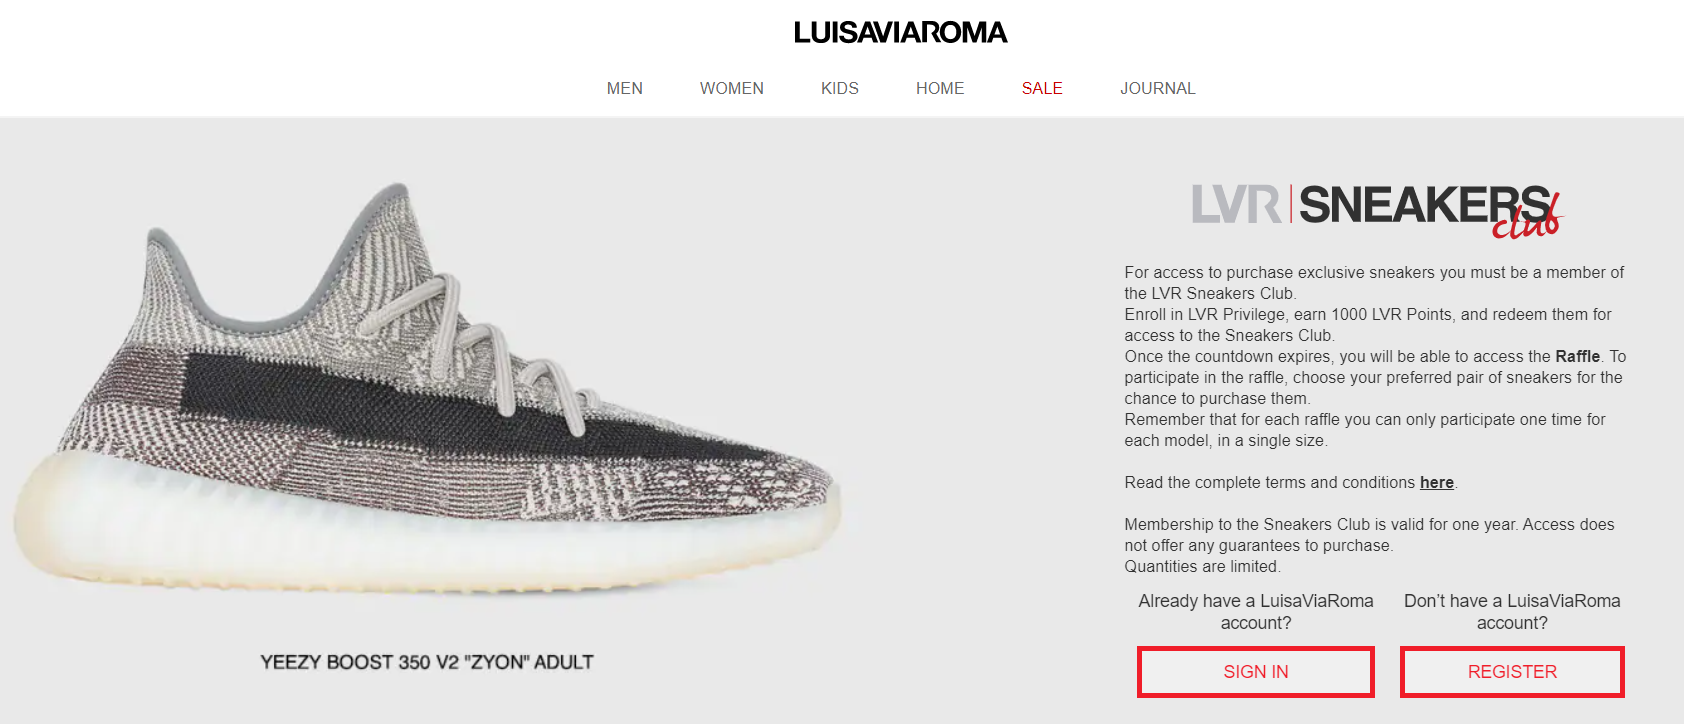 Another feature that relies heavily on emotional investment and a desire for privilege status is early access. Italian luxury fashion retailer LuisaViaRoma created an early access-centric insider group within its loyalty program, called Sneakers Club.